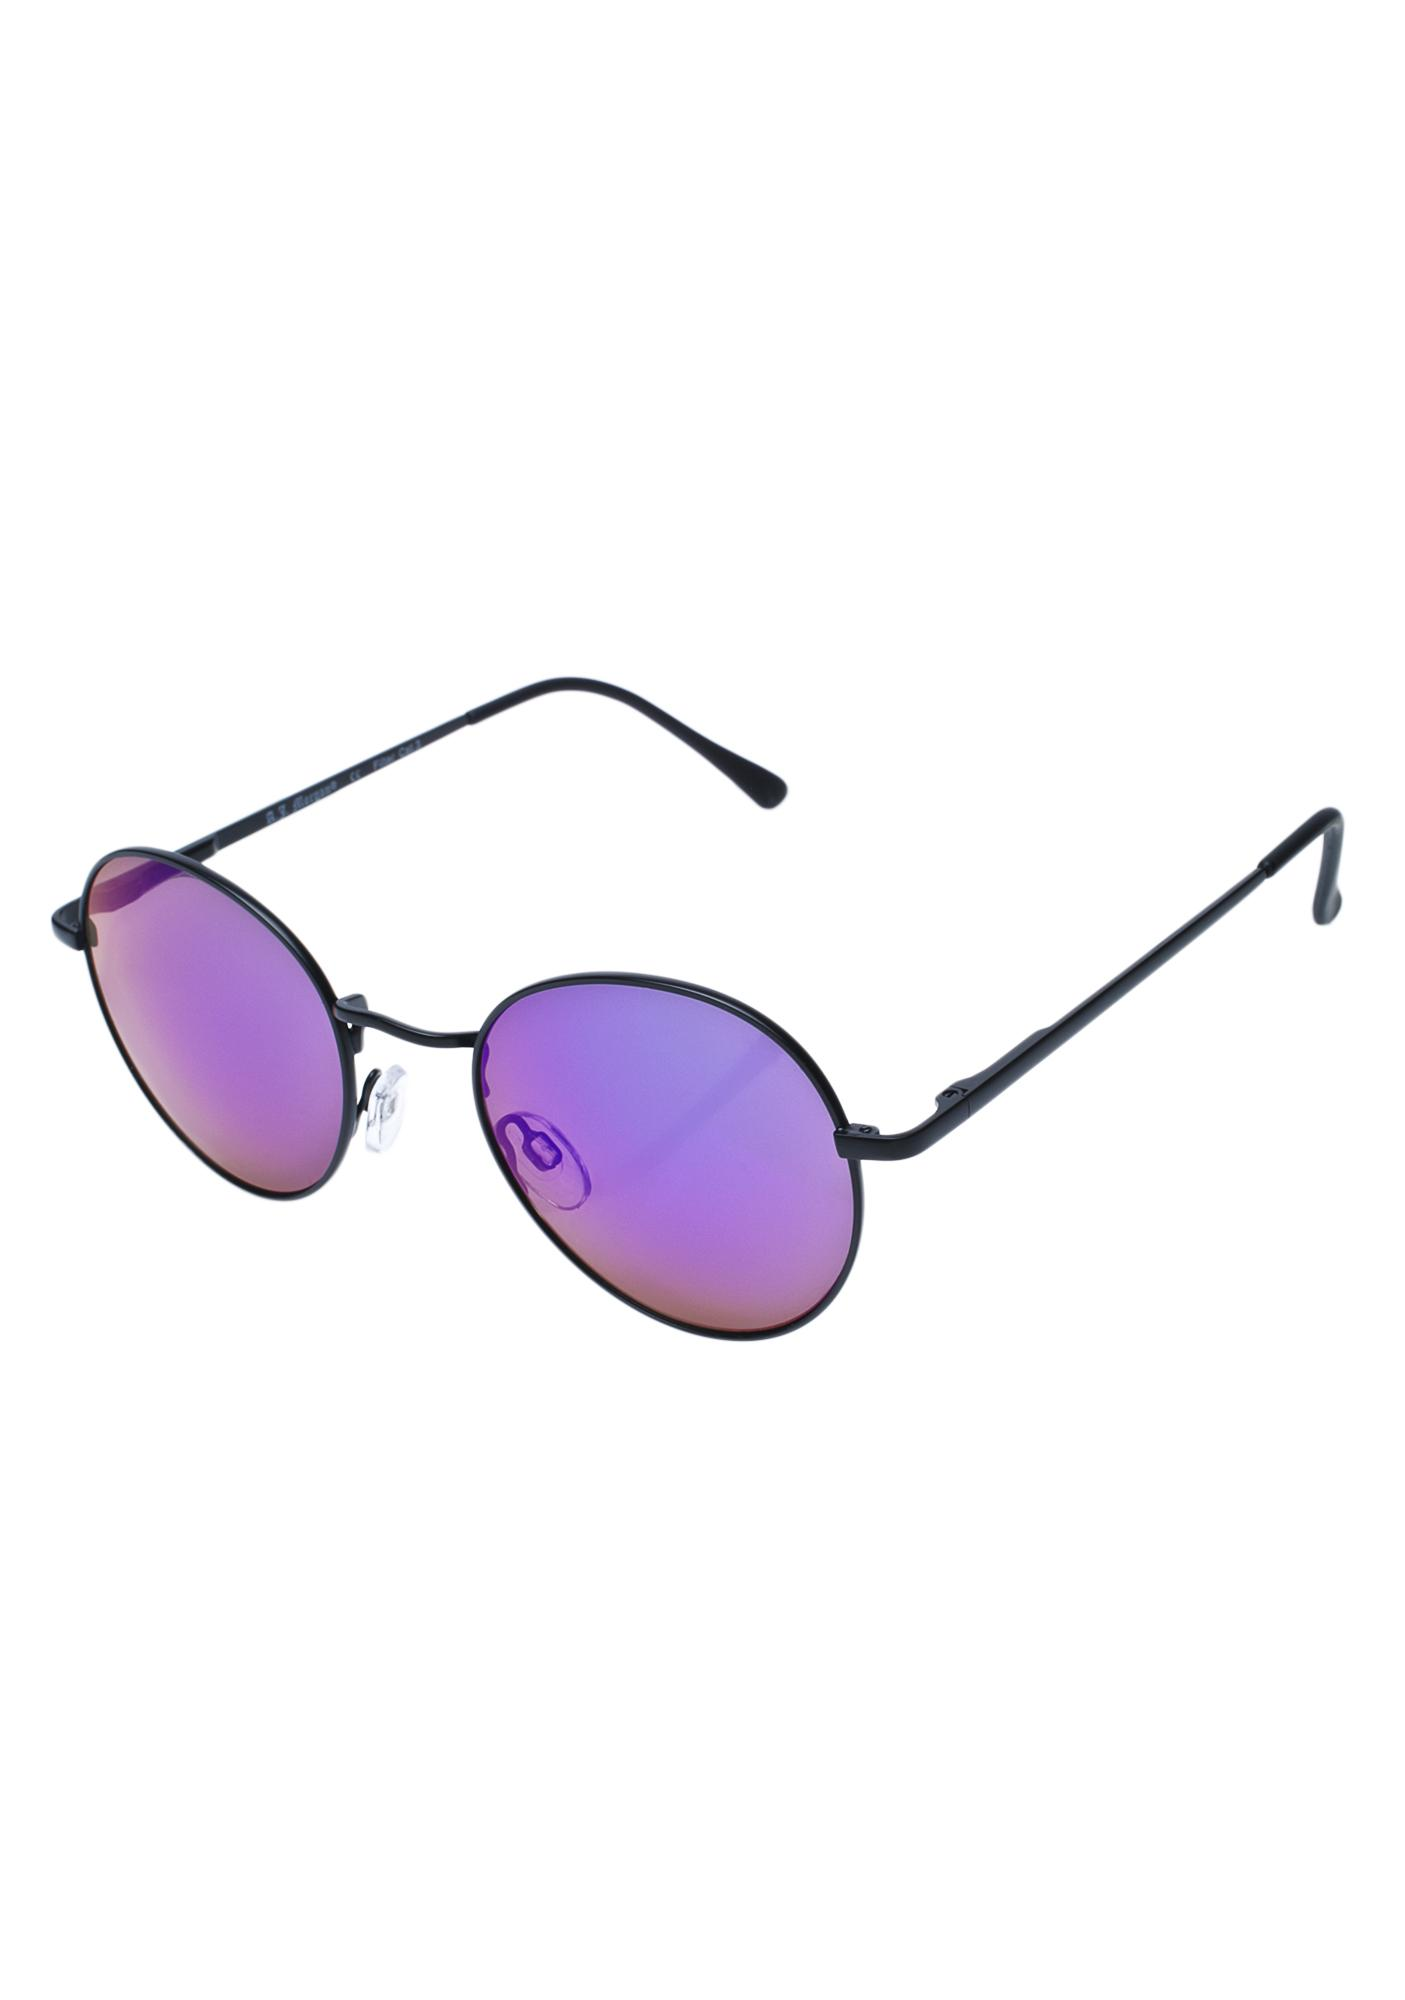 Submarine Sunglasses